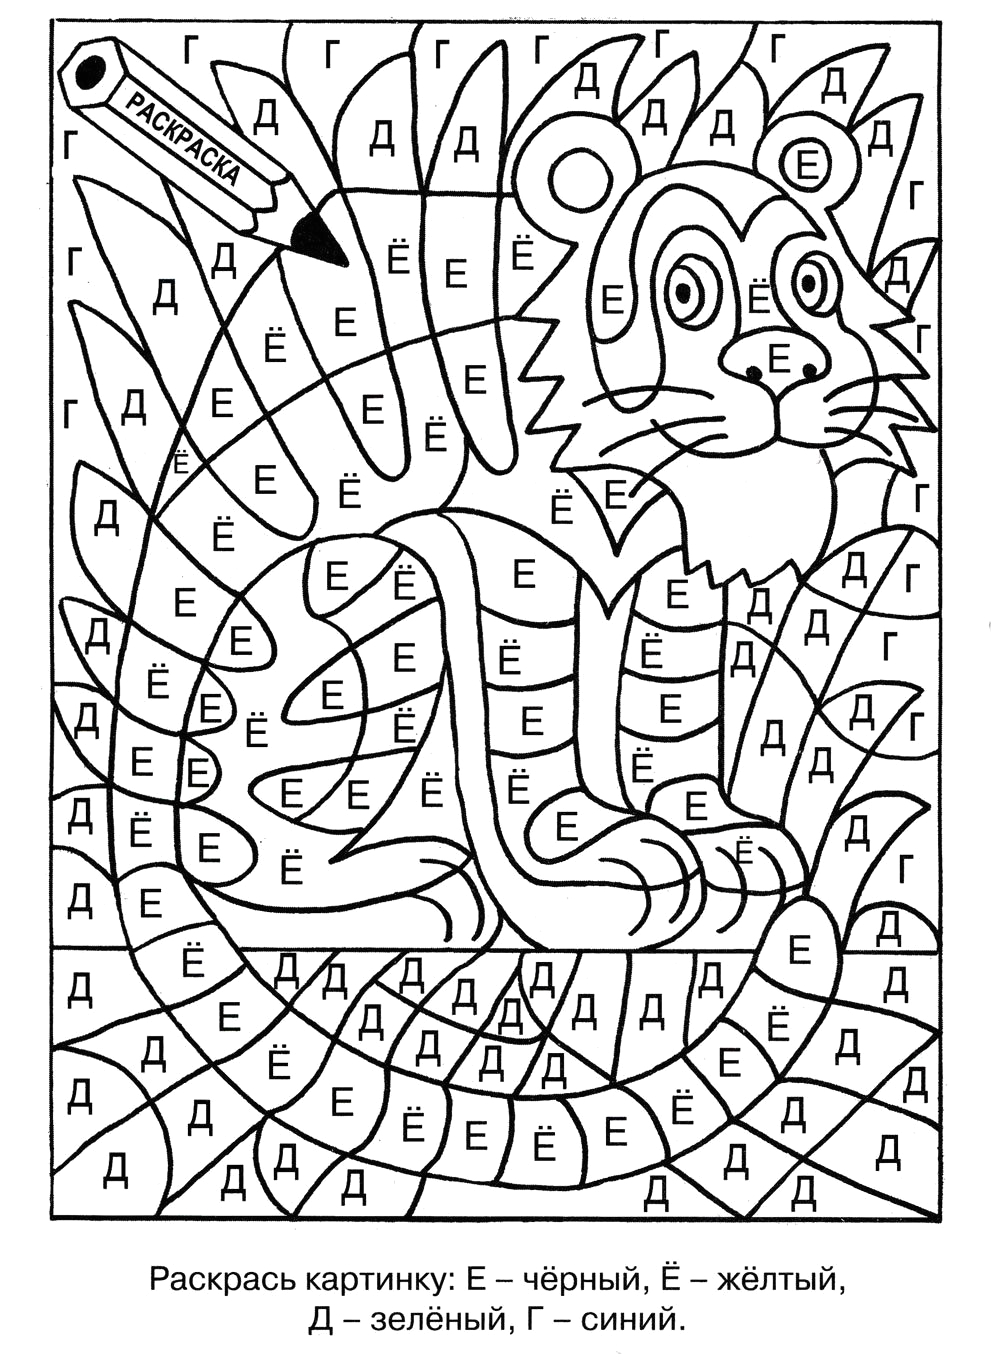 Coloring Pages for Kids 8 Years Old Coloring Pages for Boys Of 8 Years to and Print